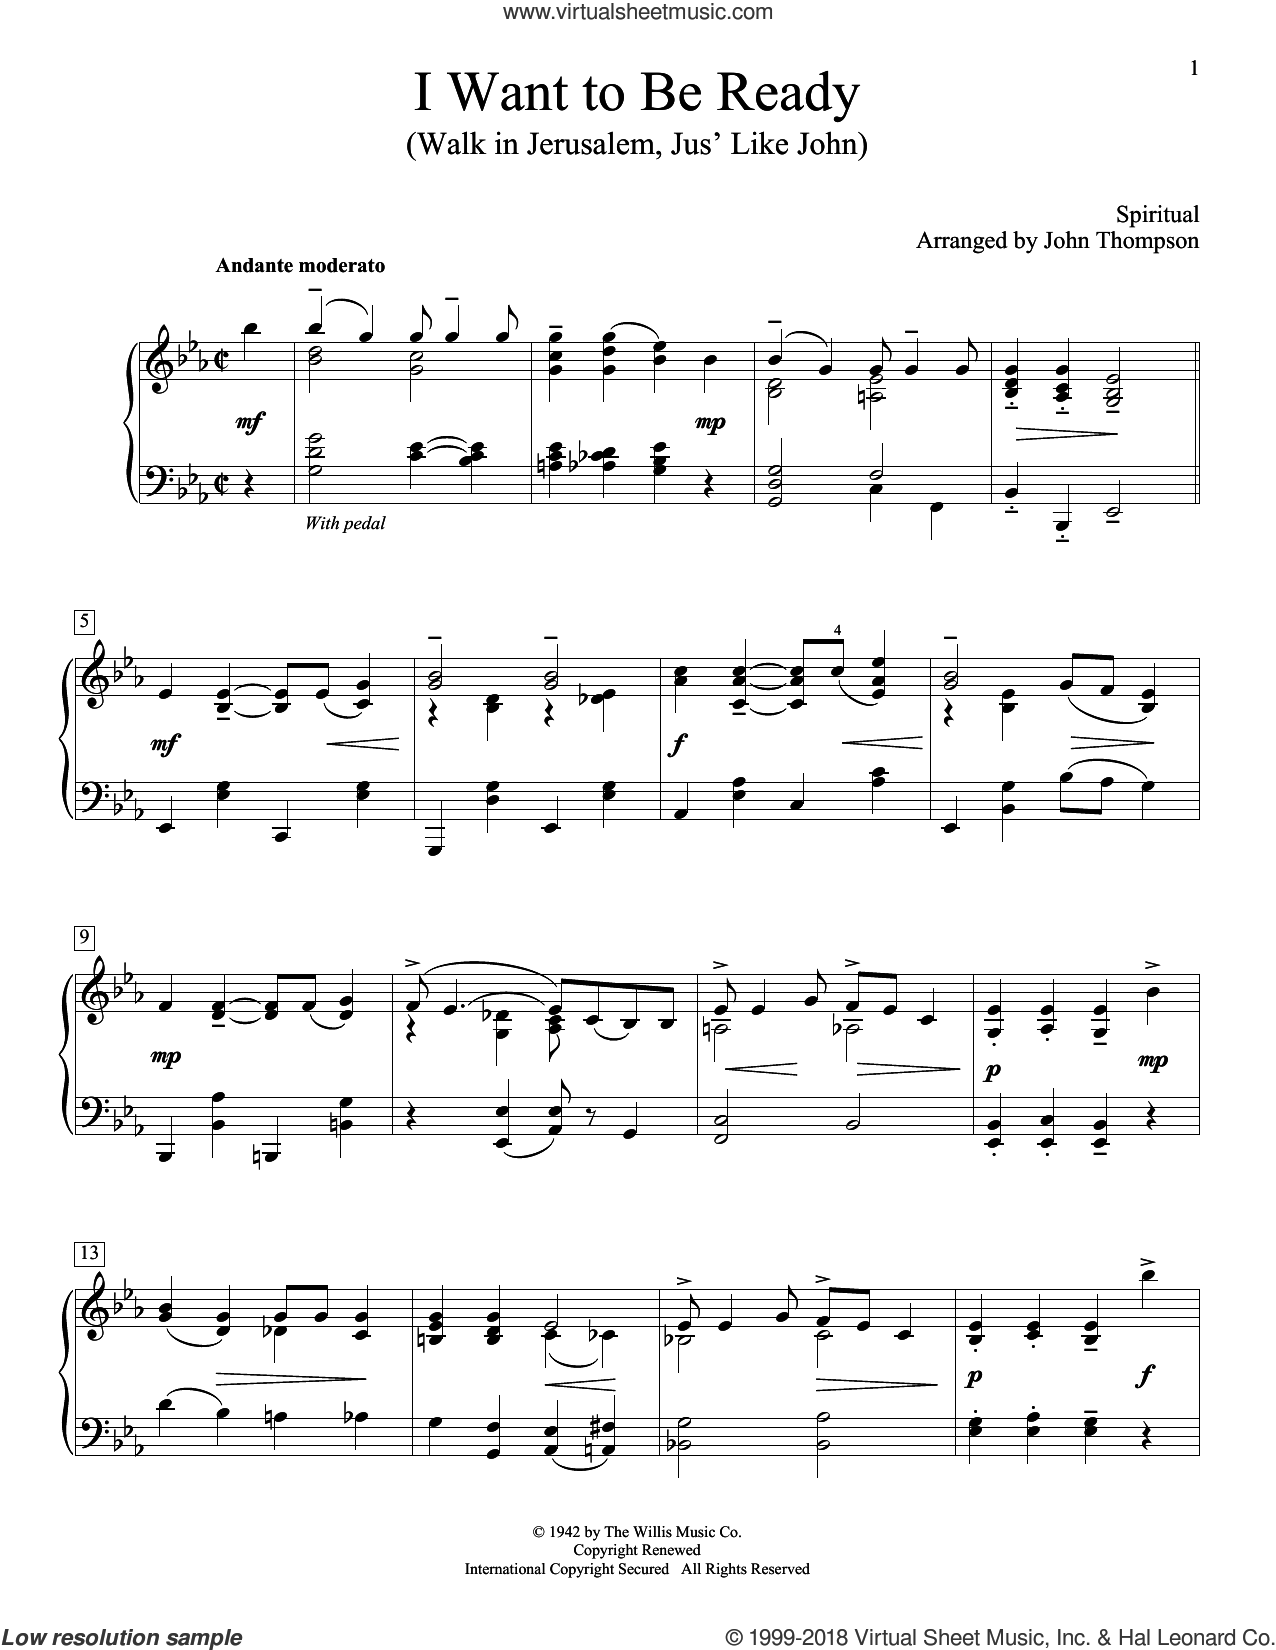 I Want To Be Ready (Walk In Jerusalem, Jus' Like John) sheet music for piano solo (elementary) by John Thompson. Score Image Preview.